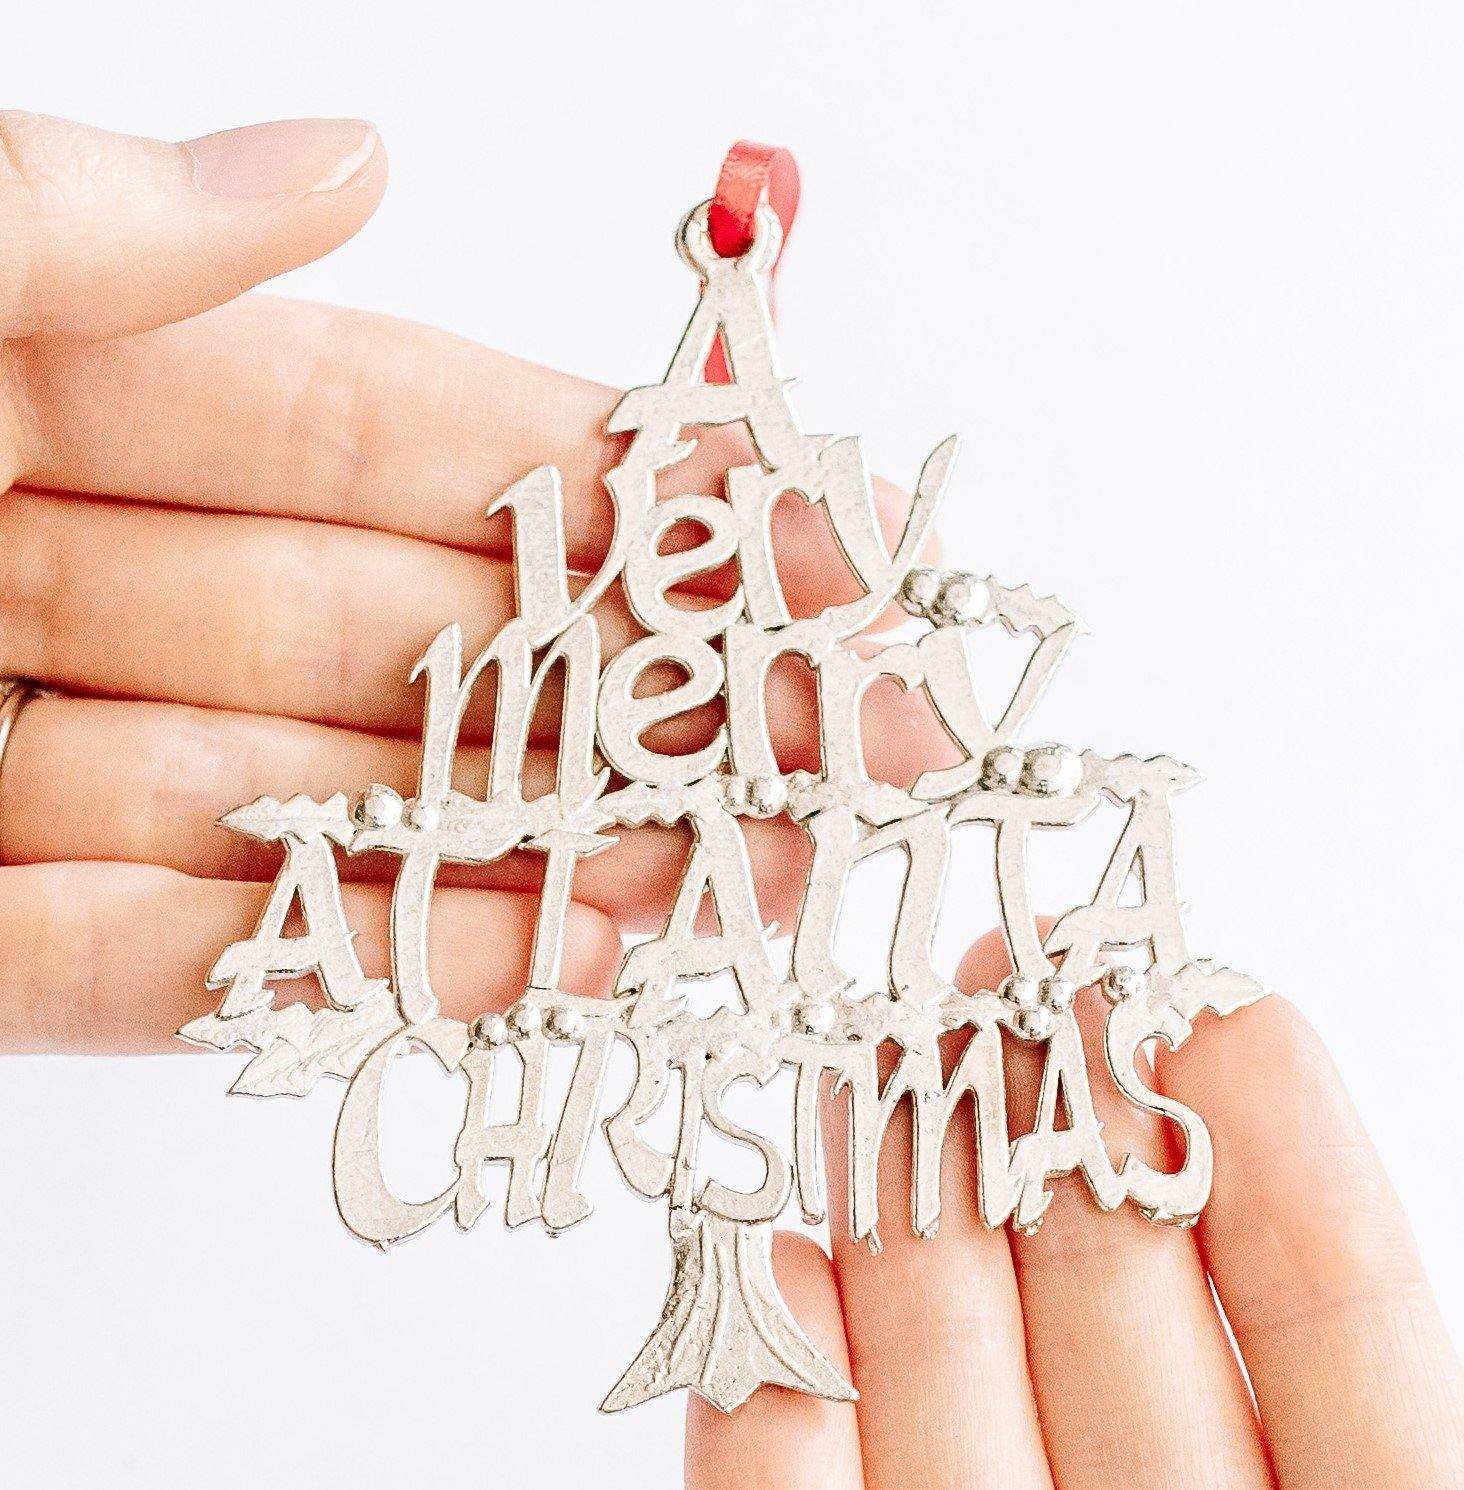 A Very Merry Atlanta ATL Christmas Holiday Keepsake Christmas Ornament Pewter - House of Morgan Pewter